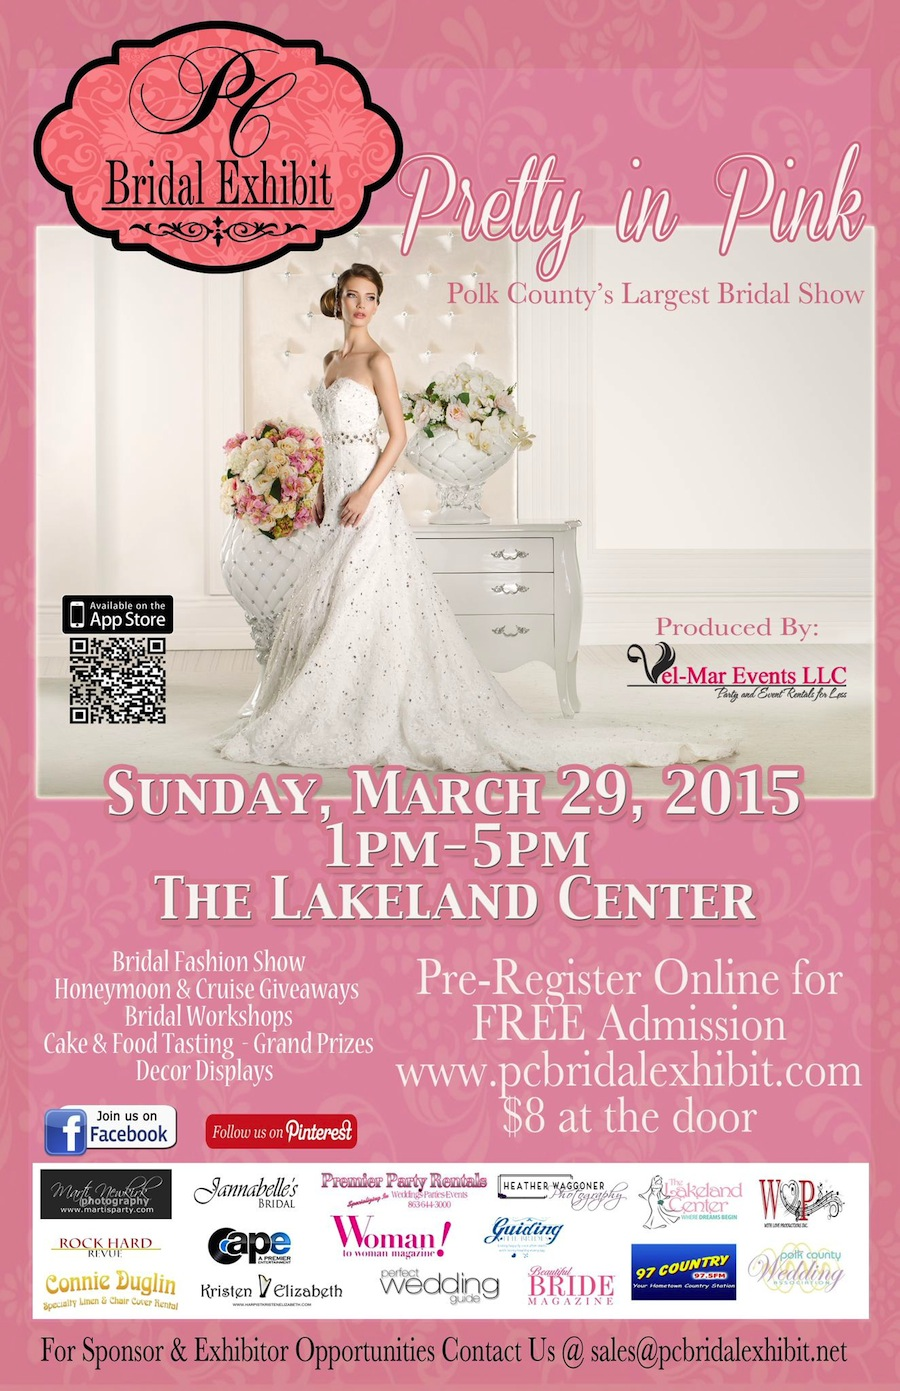 PC Bridal Exhibit Spring 2015 at the Lakeland Center | March 29, 2015